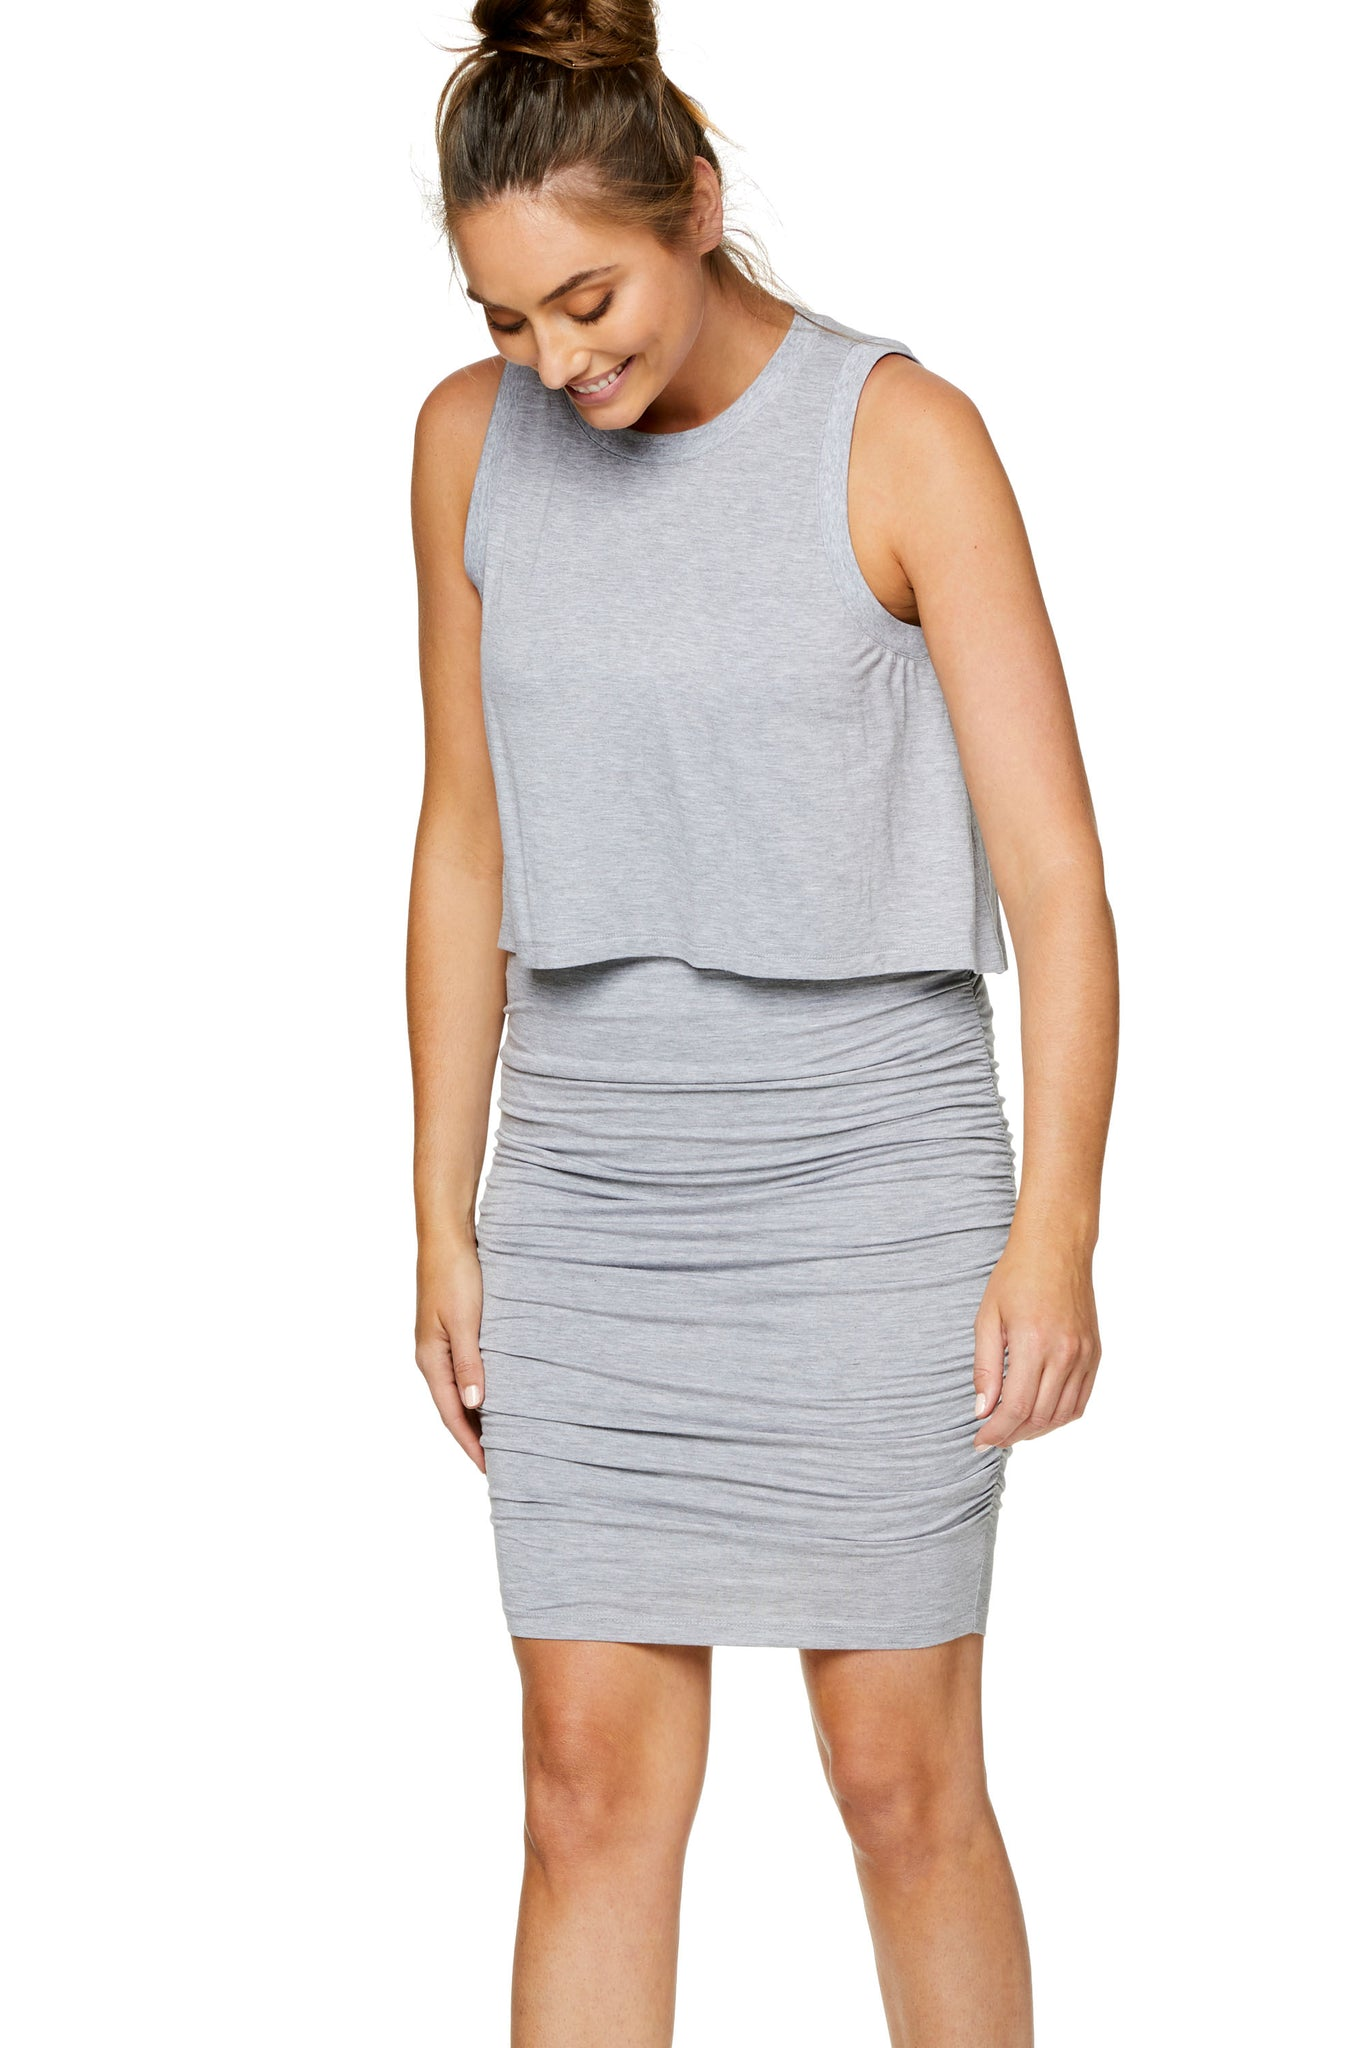 Maternity bodycon dress - Grey 5